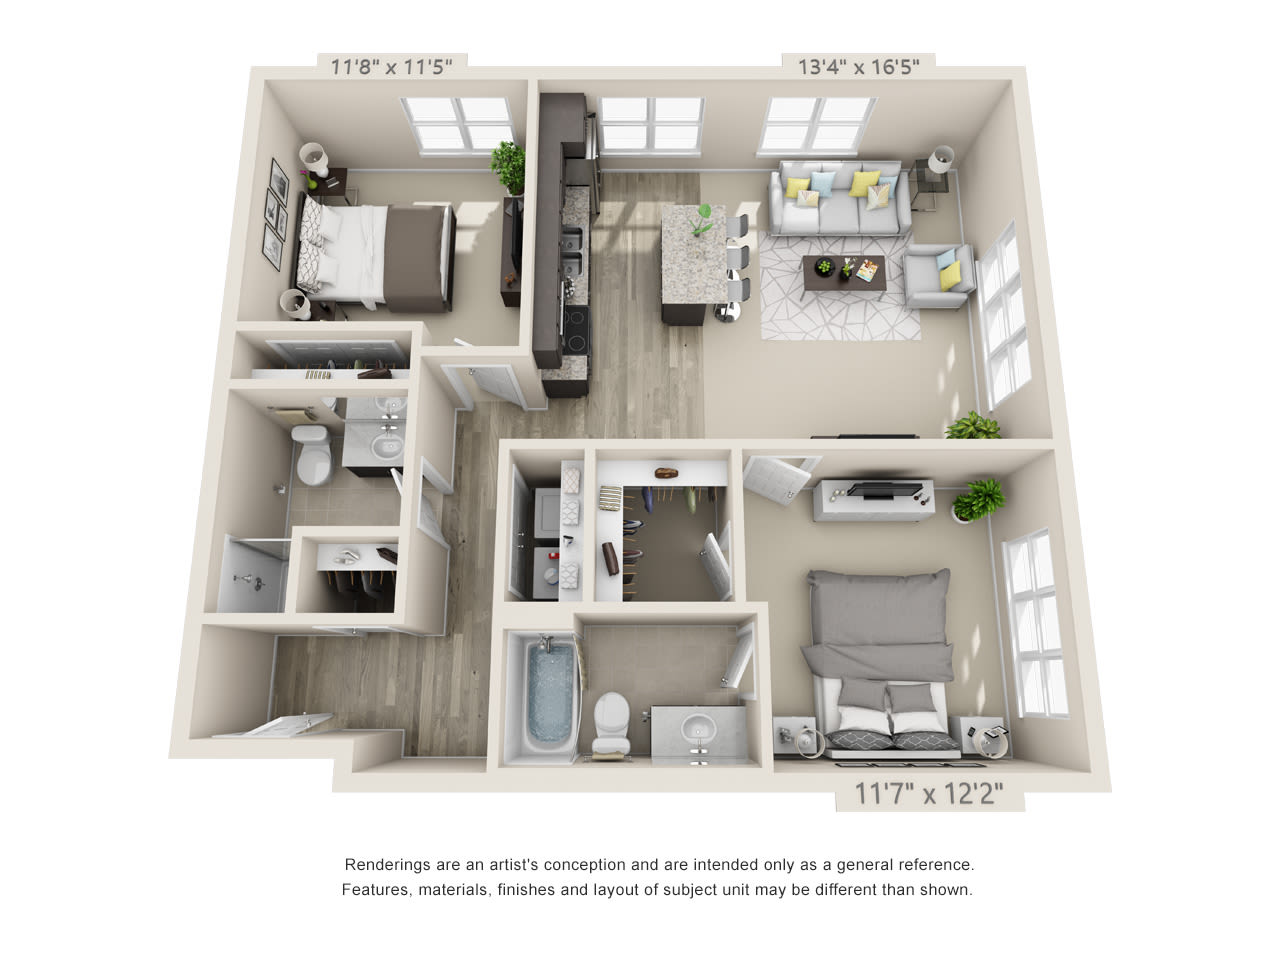 Two bedroom floor plan at Talamore Senior Living in St. Cloud, Minnesota